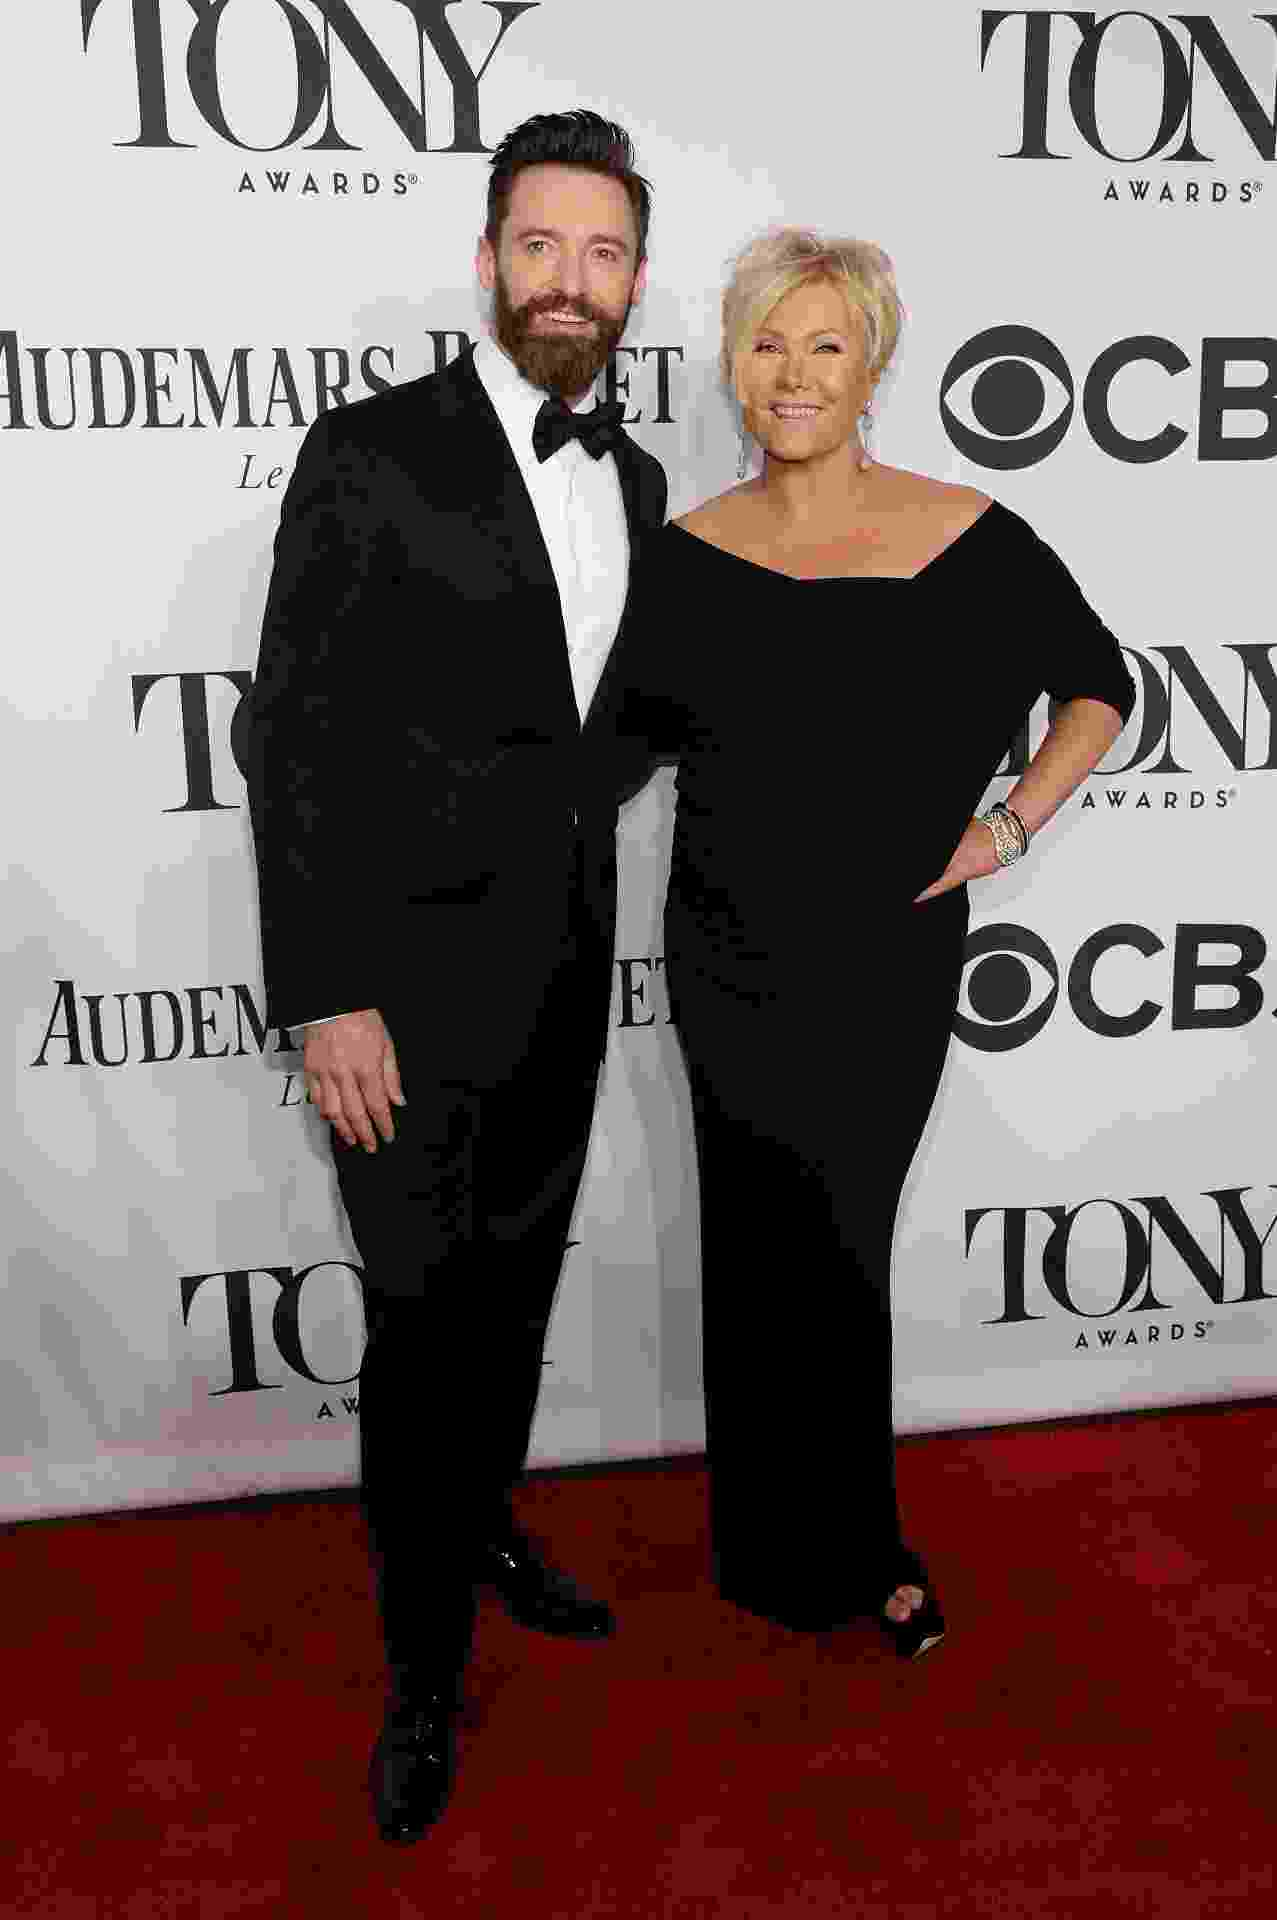 08.jun.2014 - Deborra-Lee Furness e Hugh Jackman chegam para o Tony Awards 2014 no Radio City Music Hall, em Nova York - Getty Images